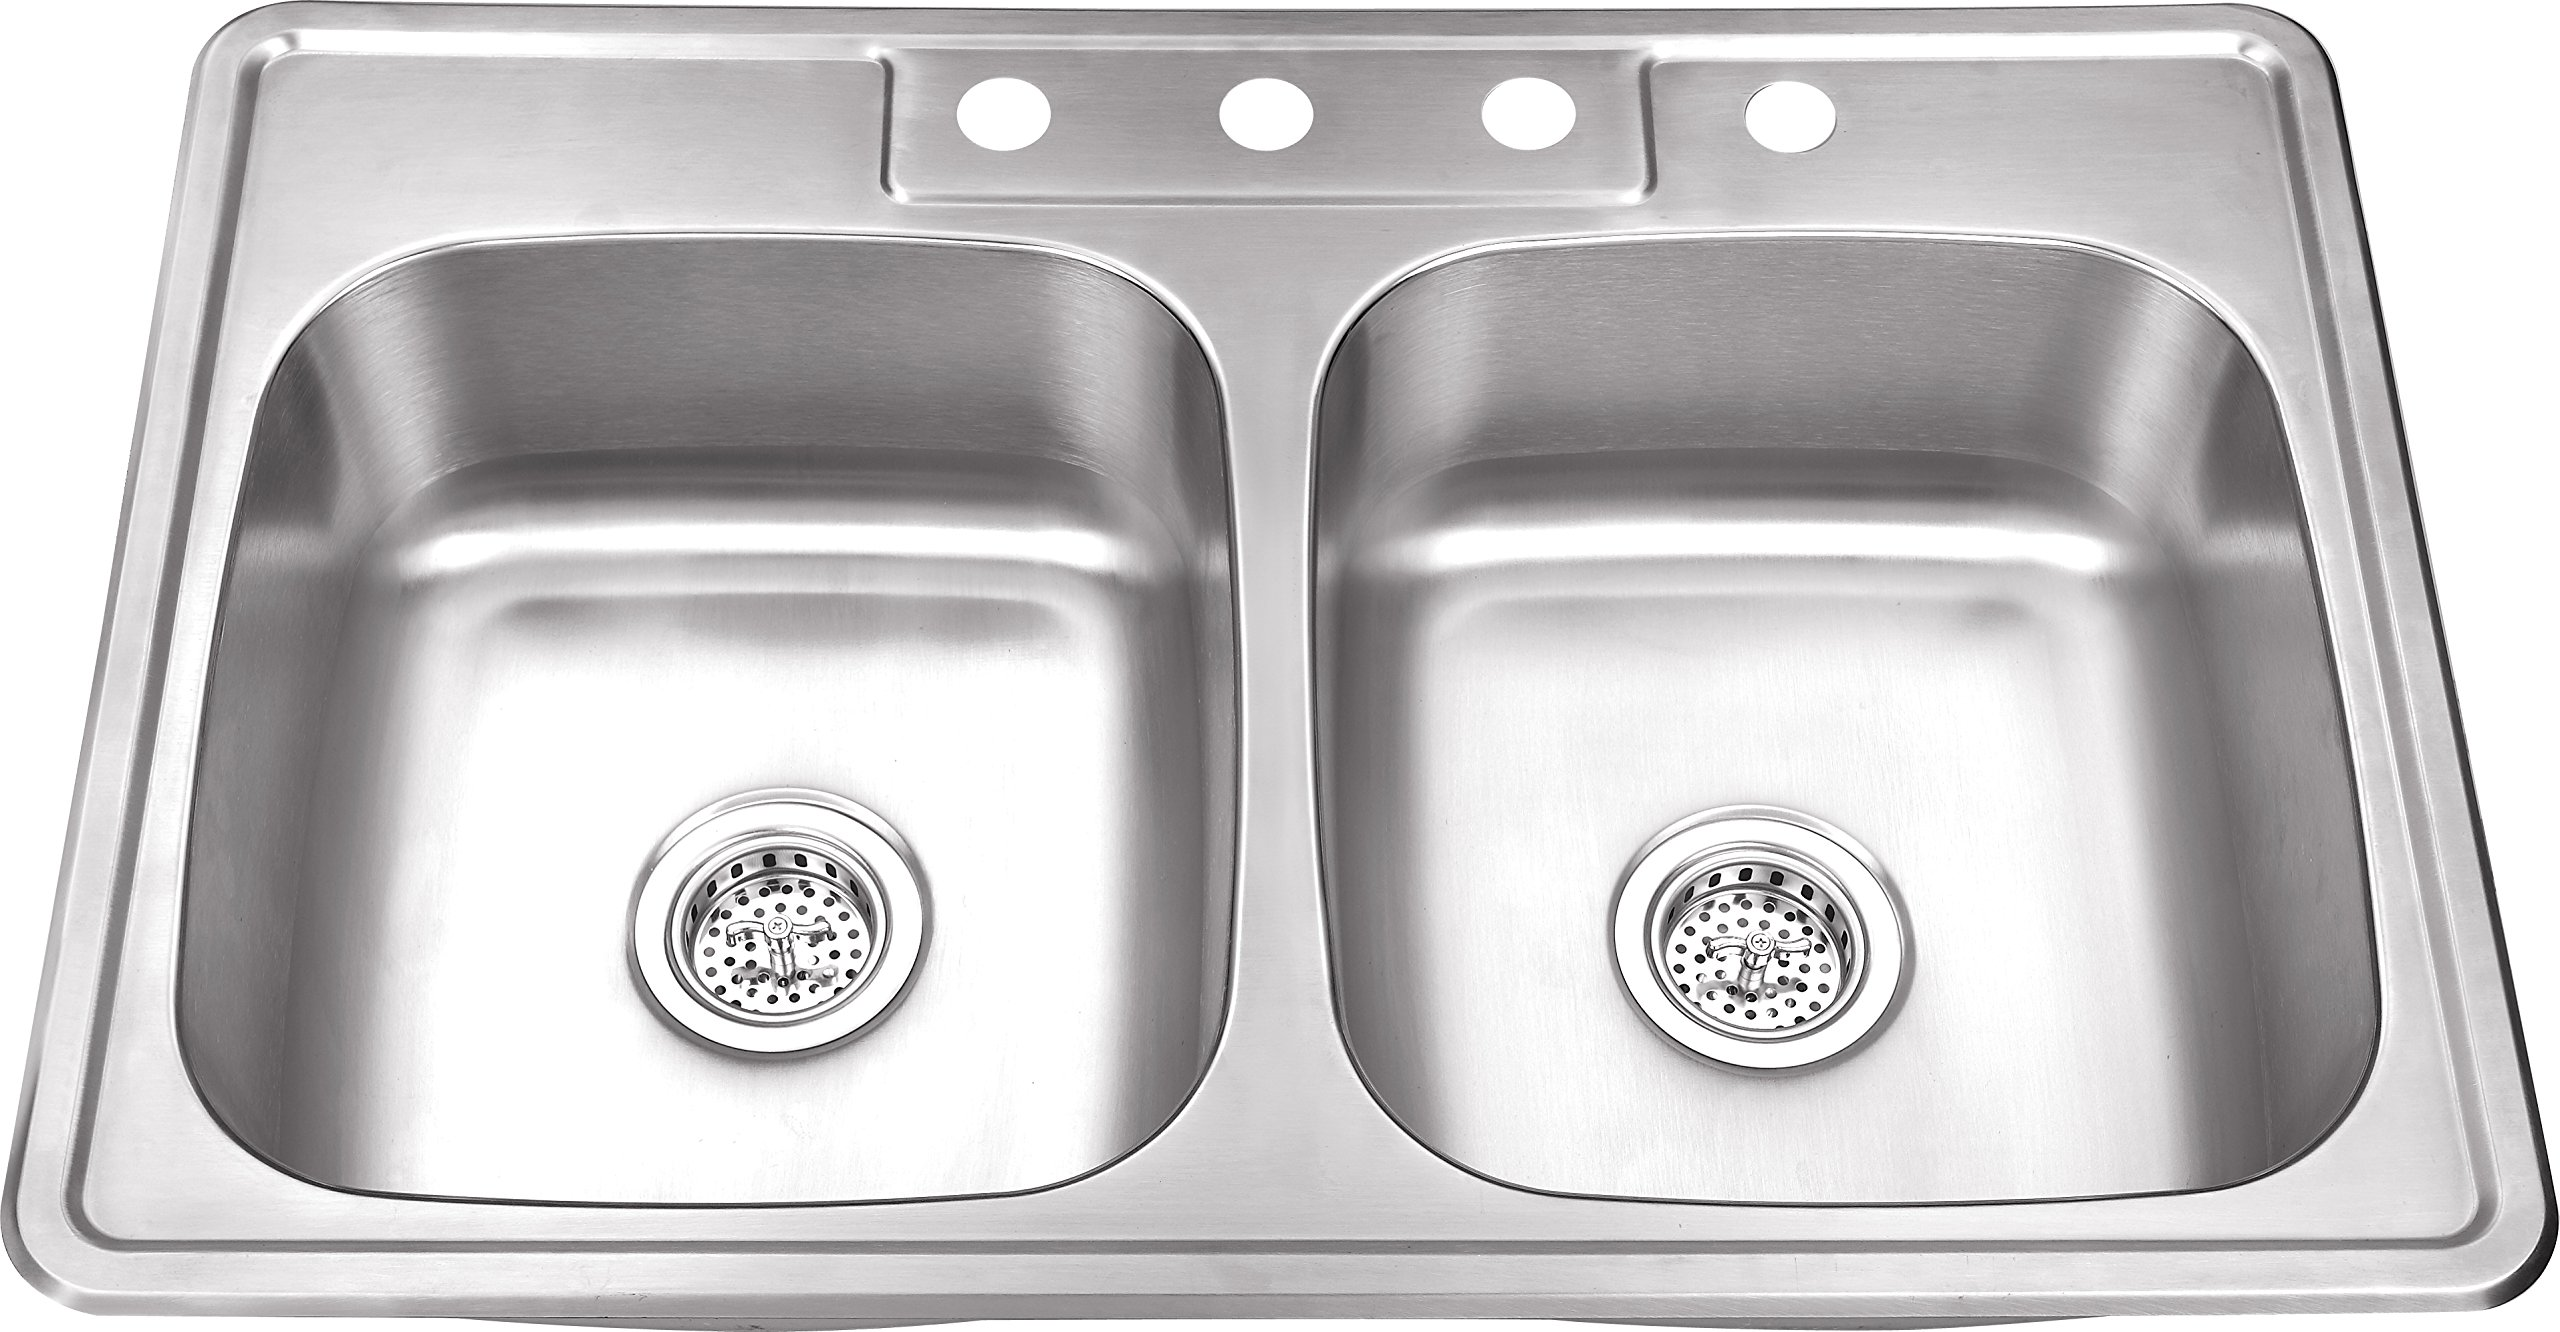 TM5050 50/50 33''x22''x8'' Top Mount/Drop In Stainless Steel Double Bowl Kitchen Sink